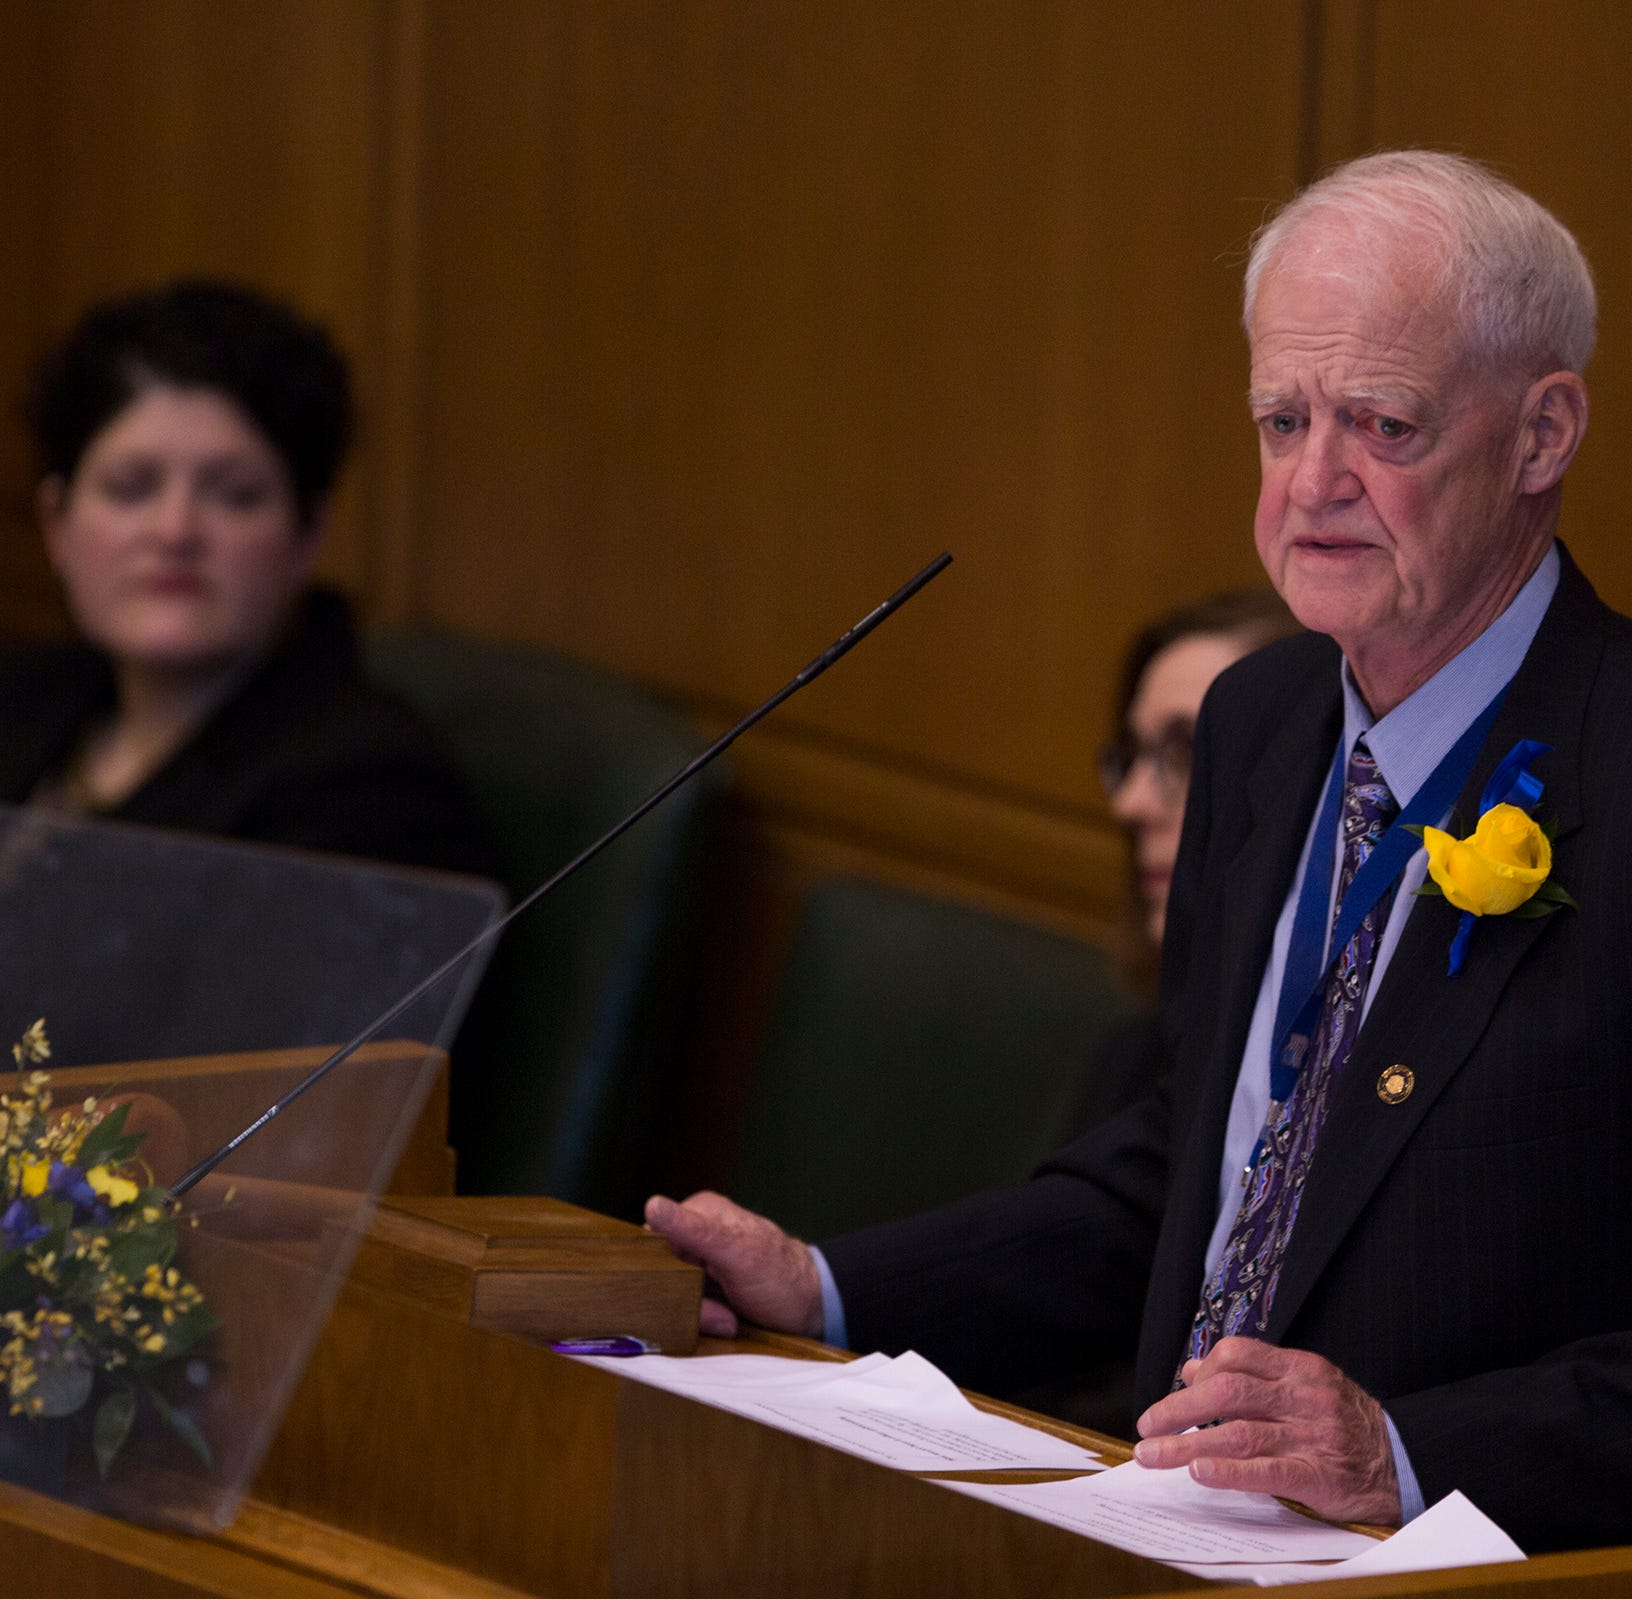 Oregon Senate President Peter Courtney taking medical leave from Capitol